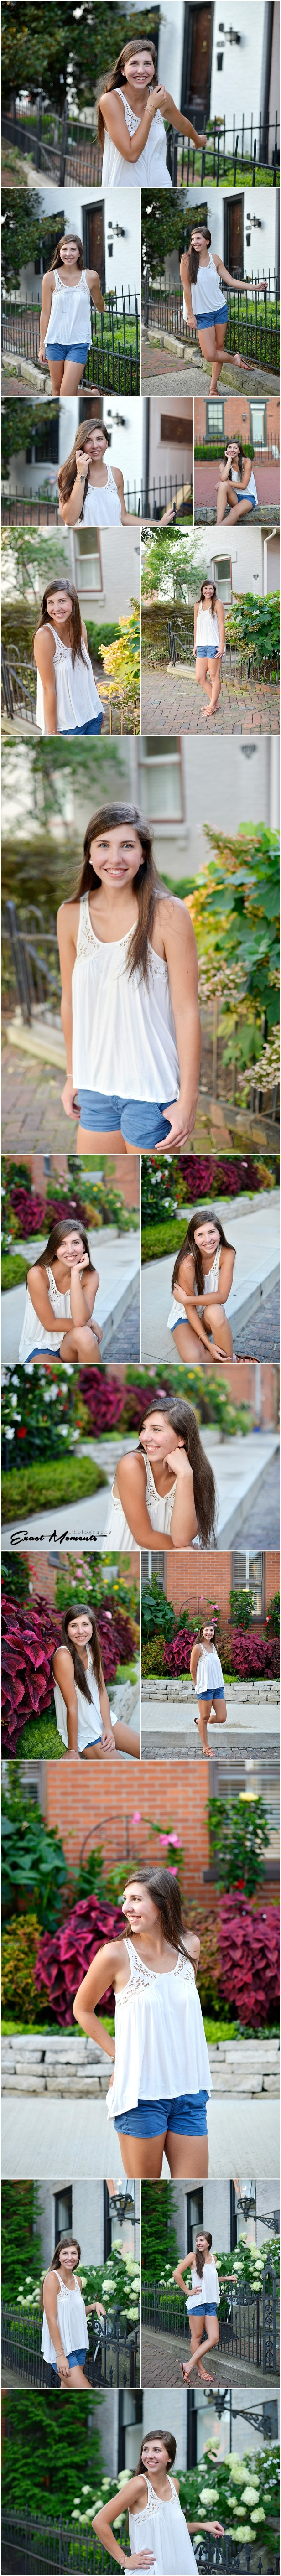 senior-photography-columbus-ohio